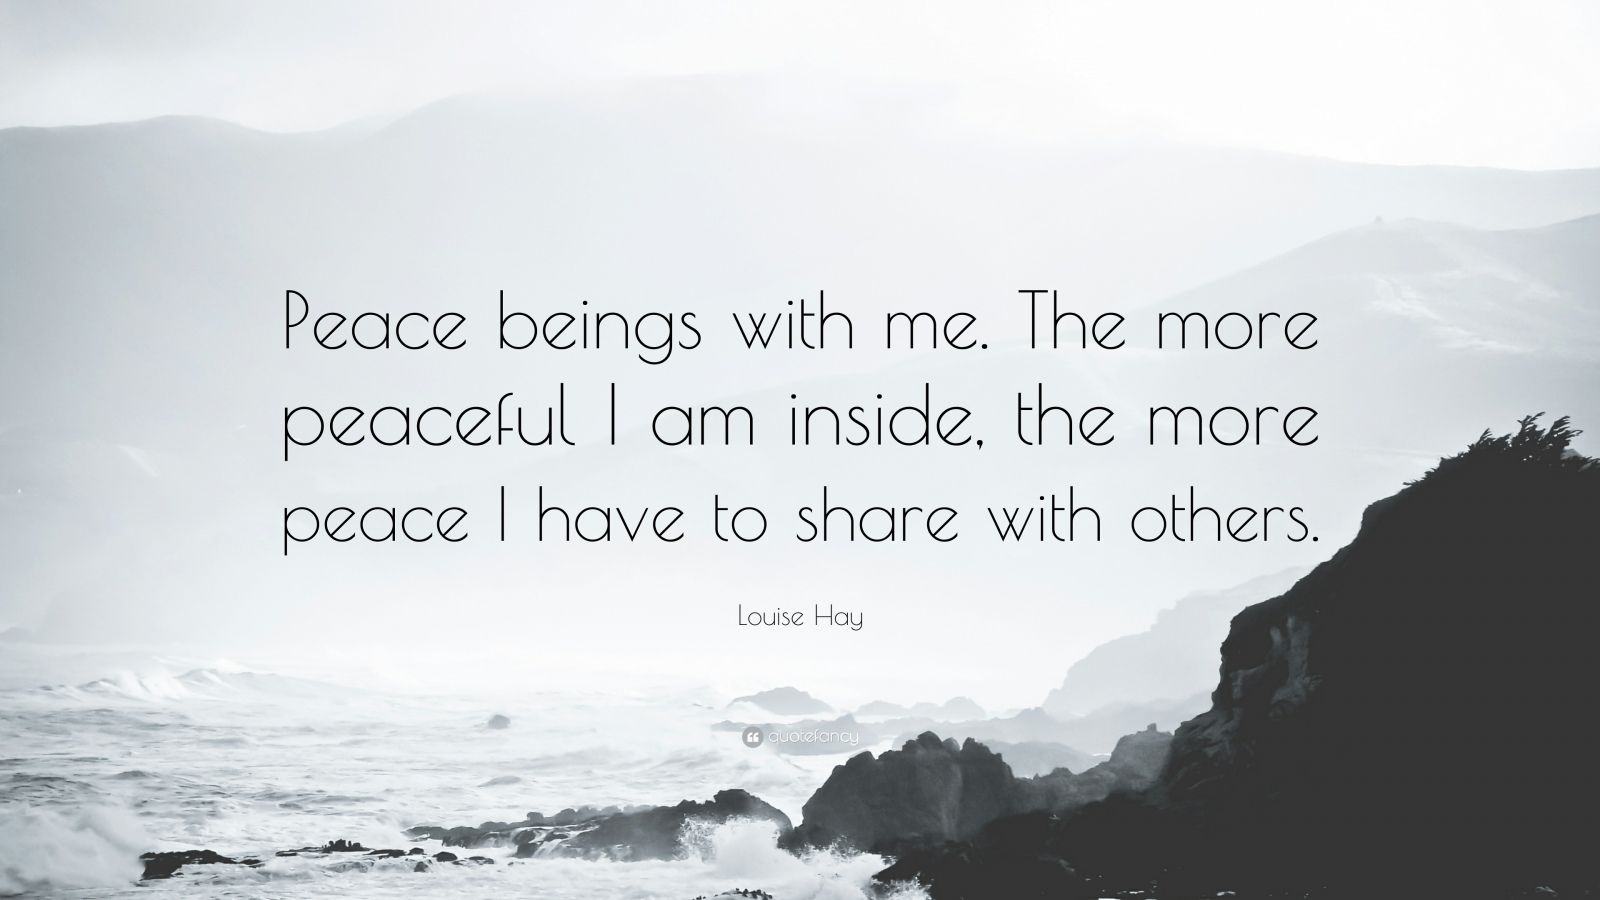 """Louise Hay Quote: """"Peace beings with me. The more peaceful I am inside, the more peace I have to share with others."""""""